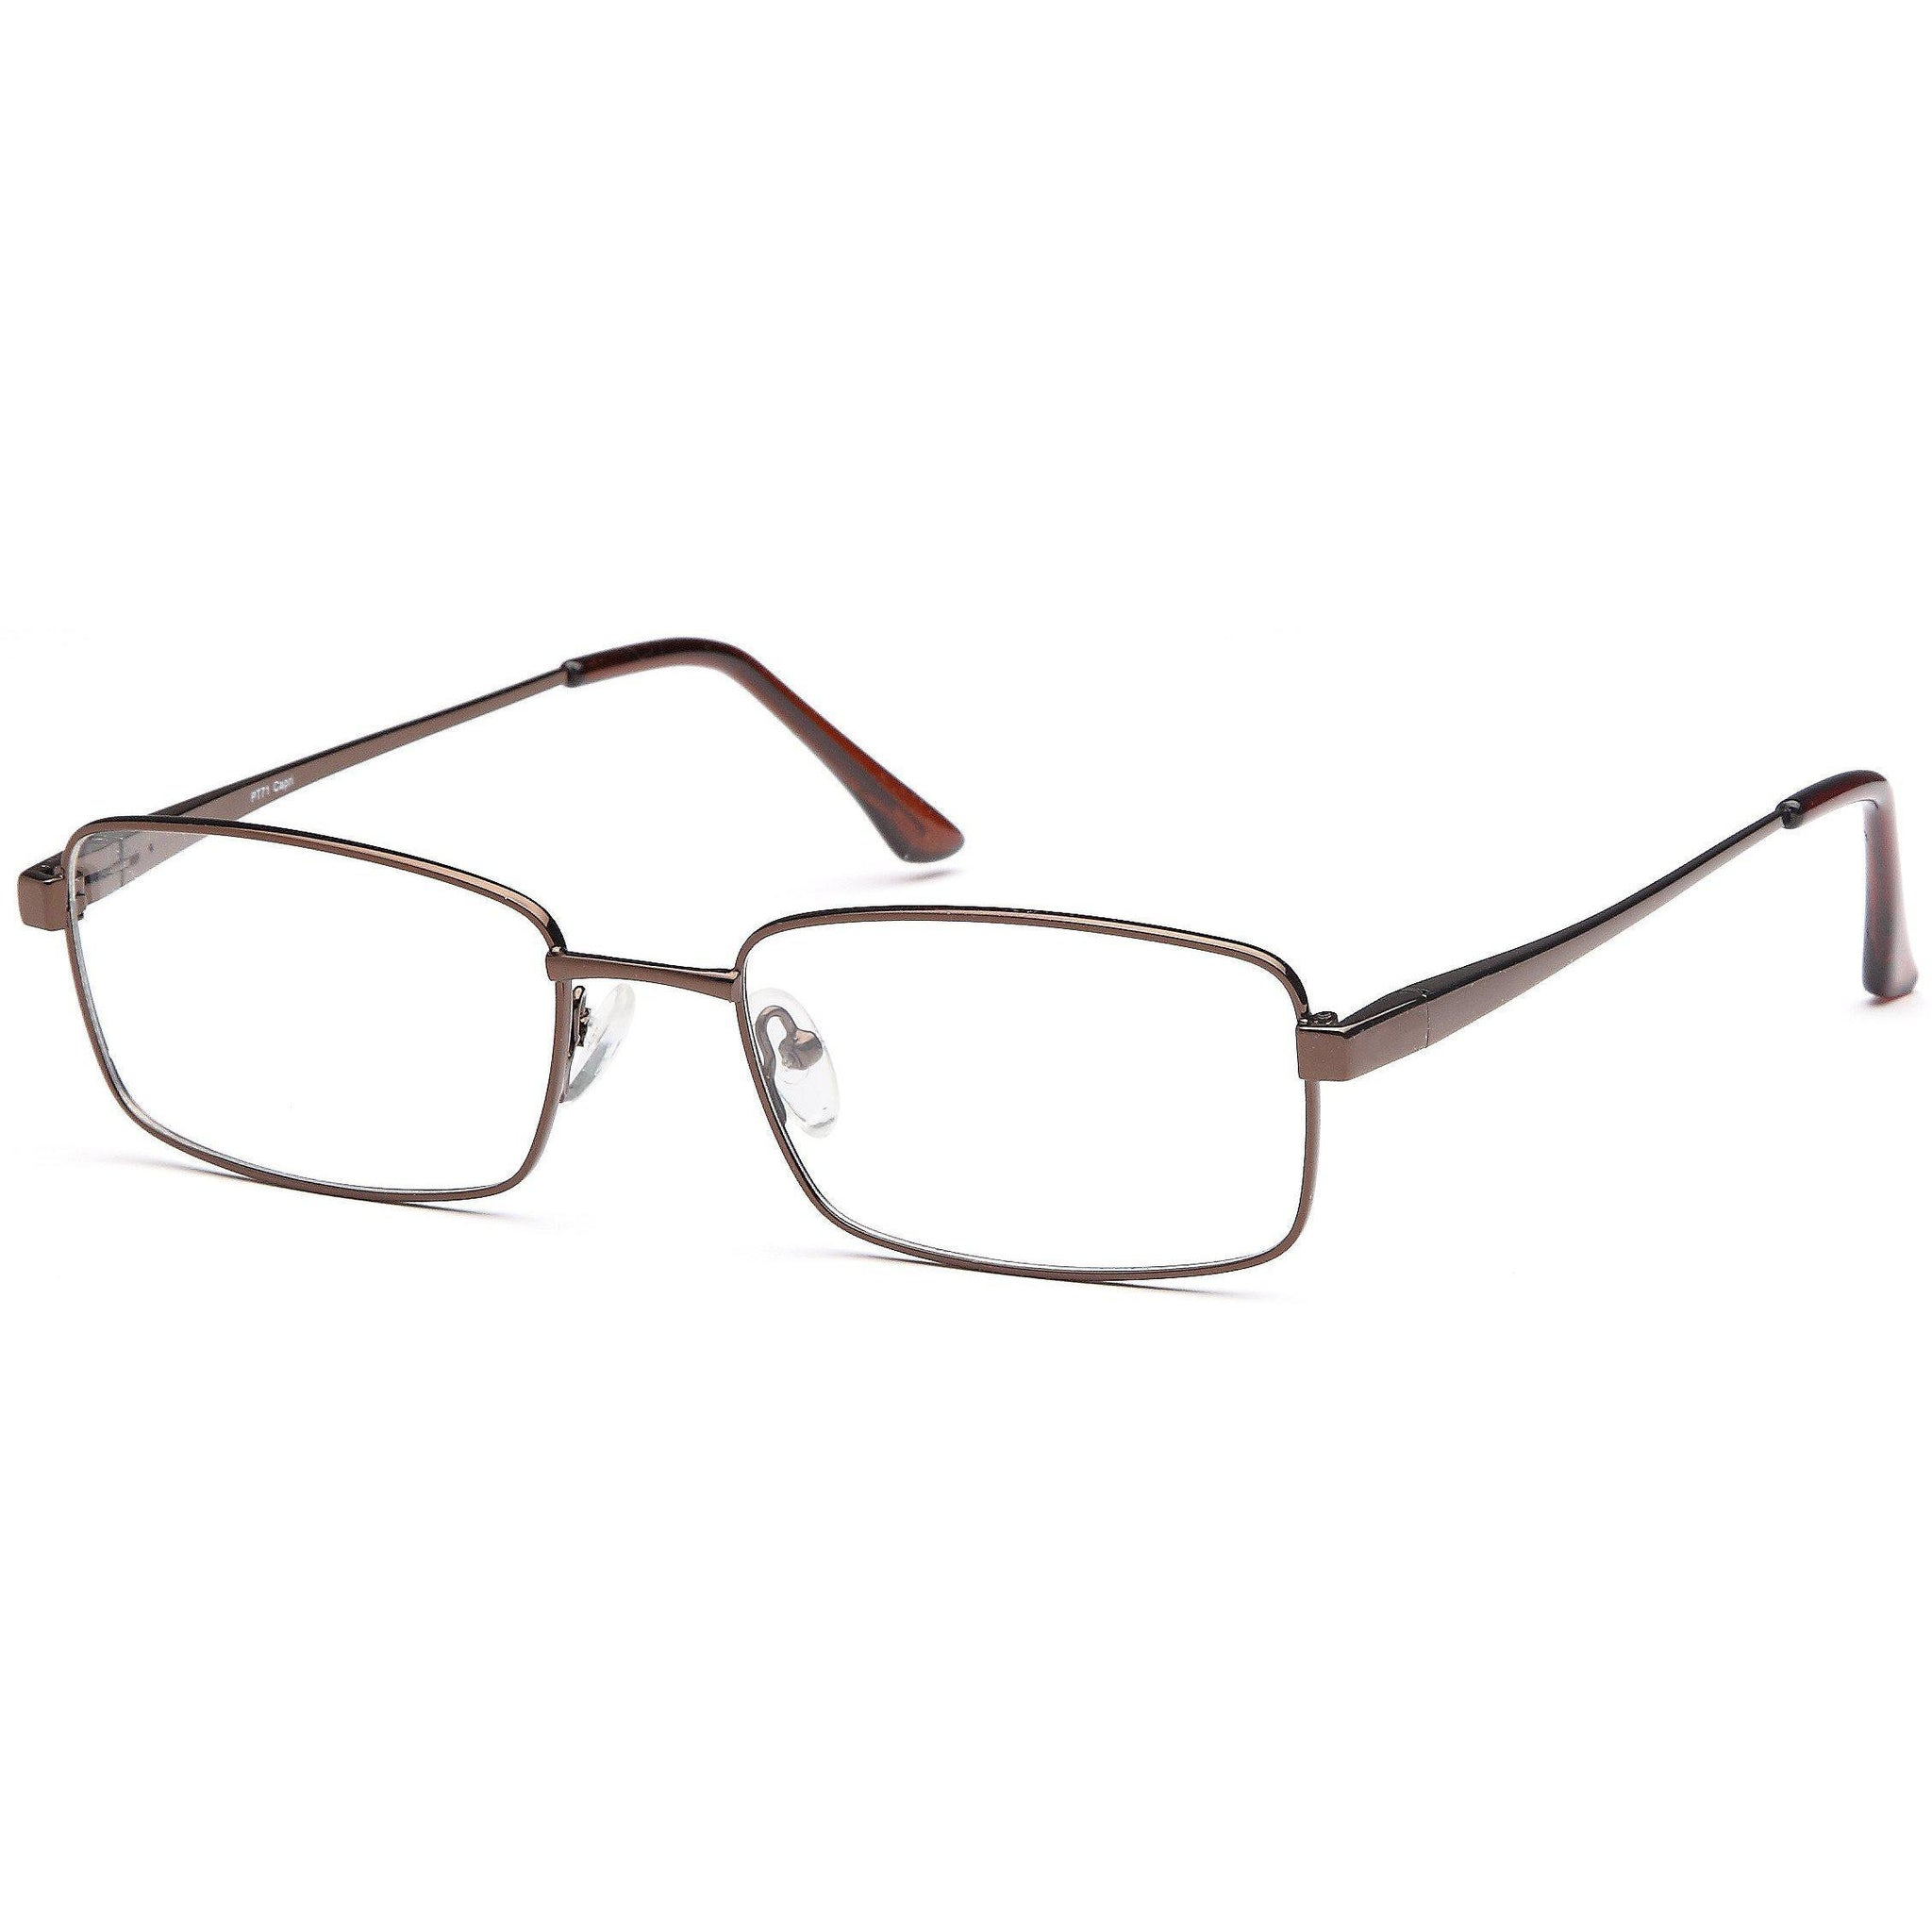 Appletree Prescription Glasses PT 71 Eyeglasses Frame